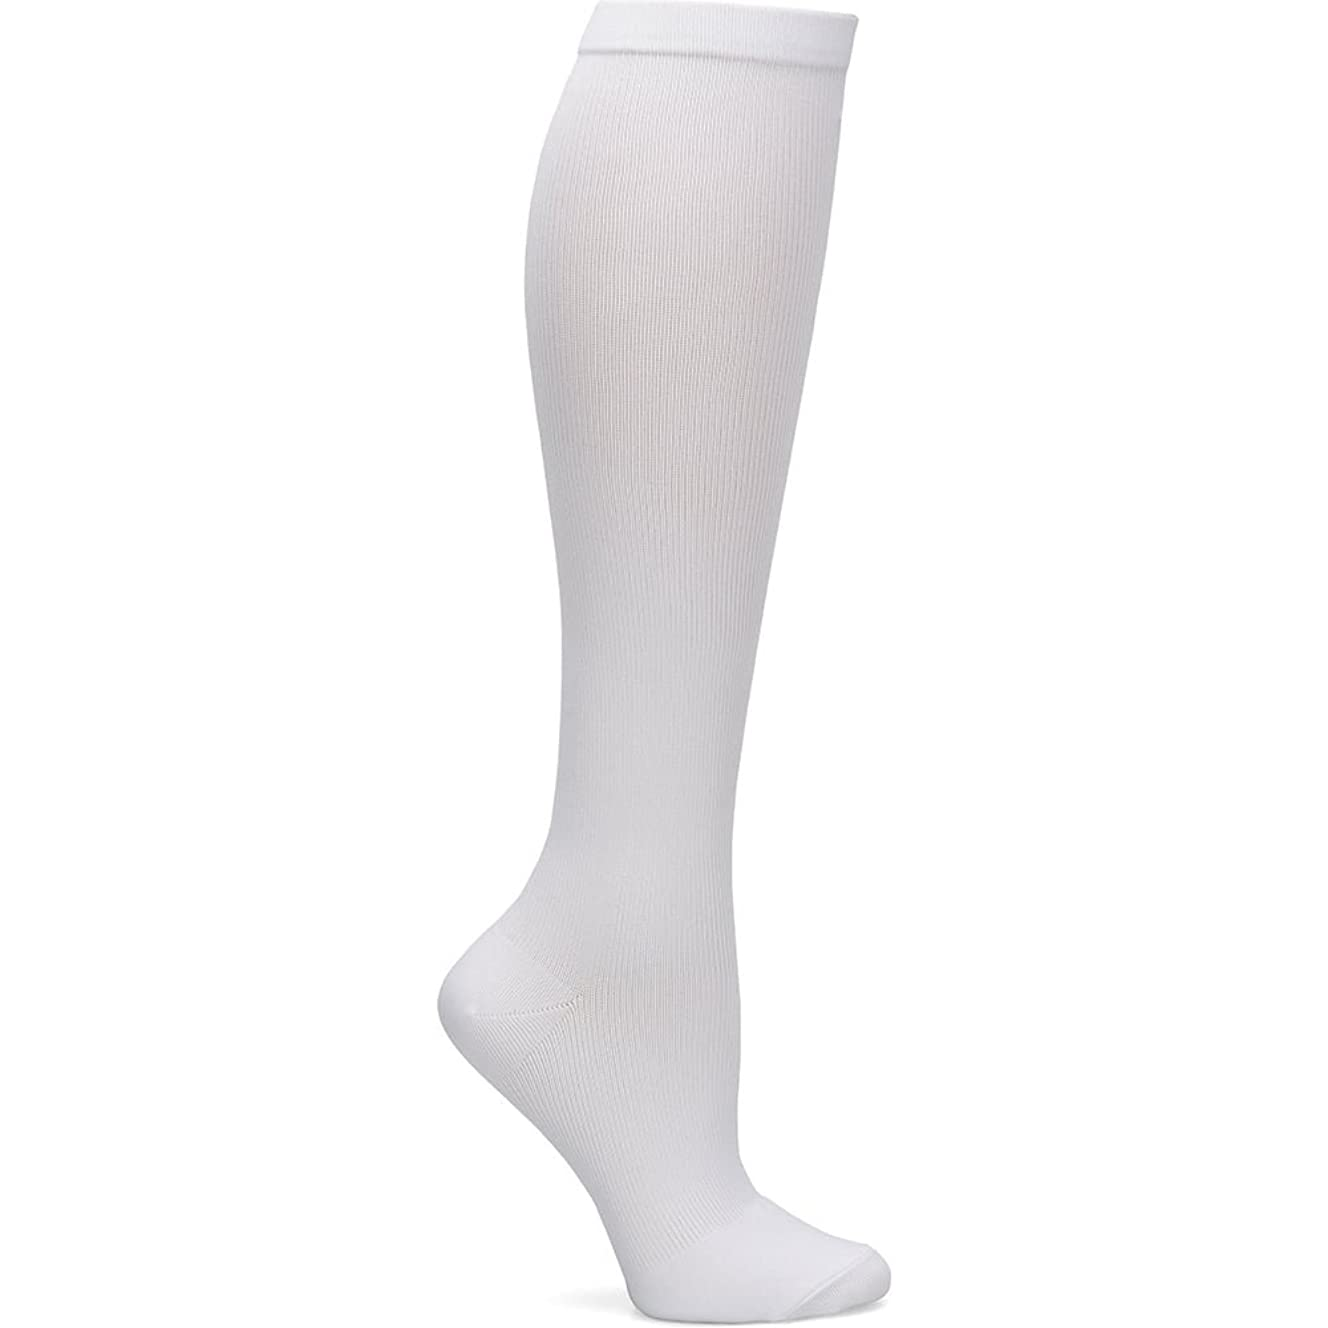 Nurse Mates Women's 12-14 Mmhg Compression Trouser Sock Solid White